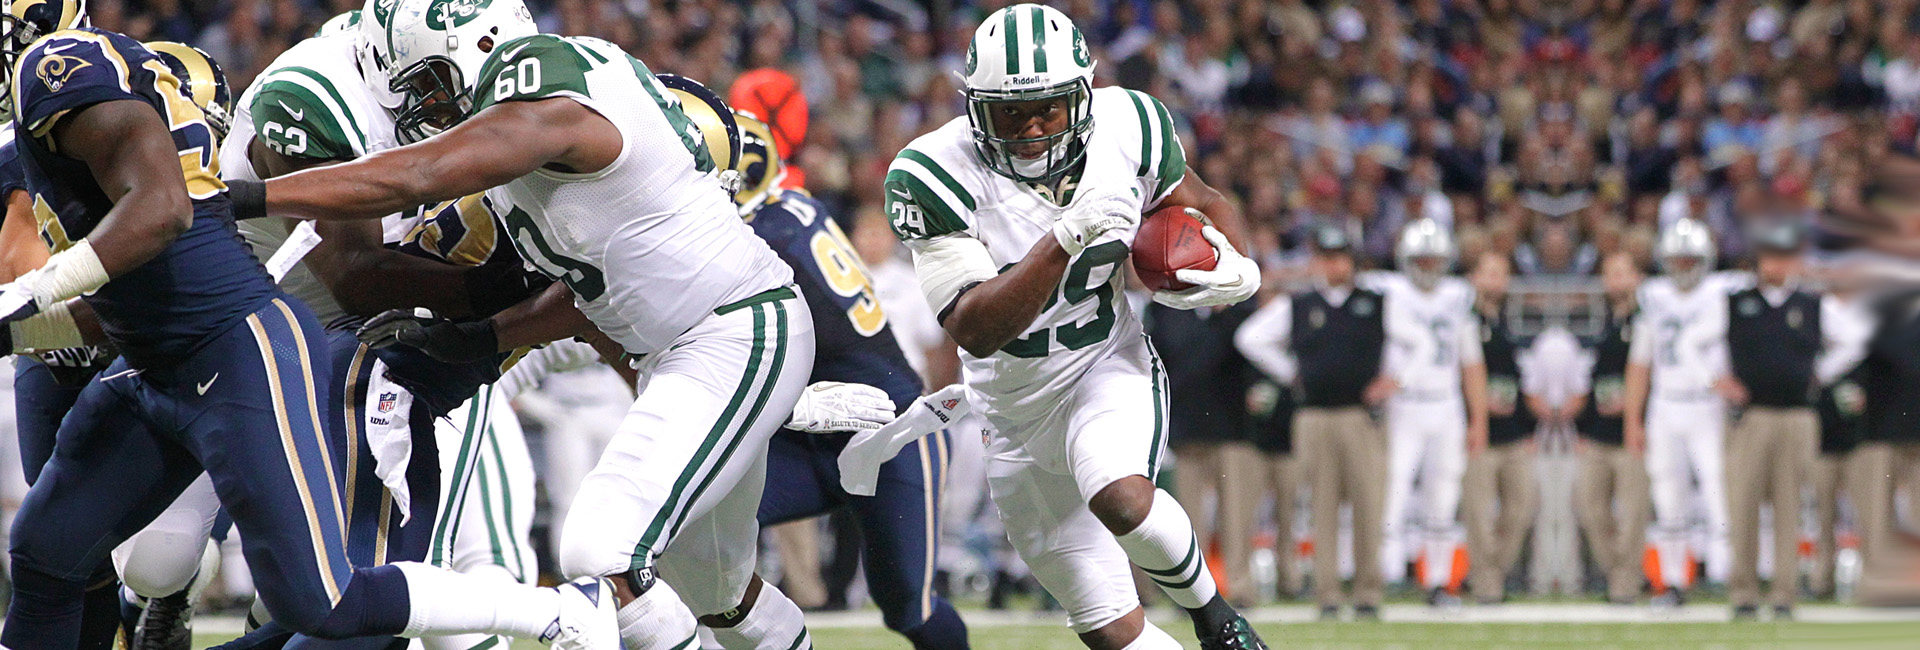 Waiver Wire Fantasy Pickups: Week 15 | Gridiron Experts